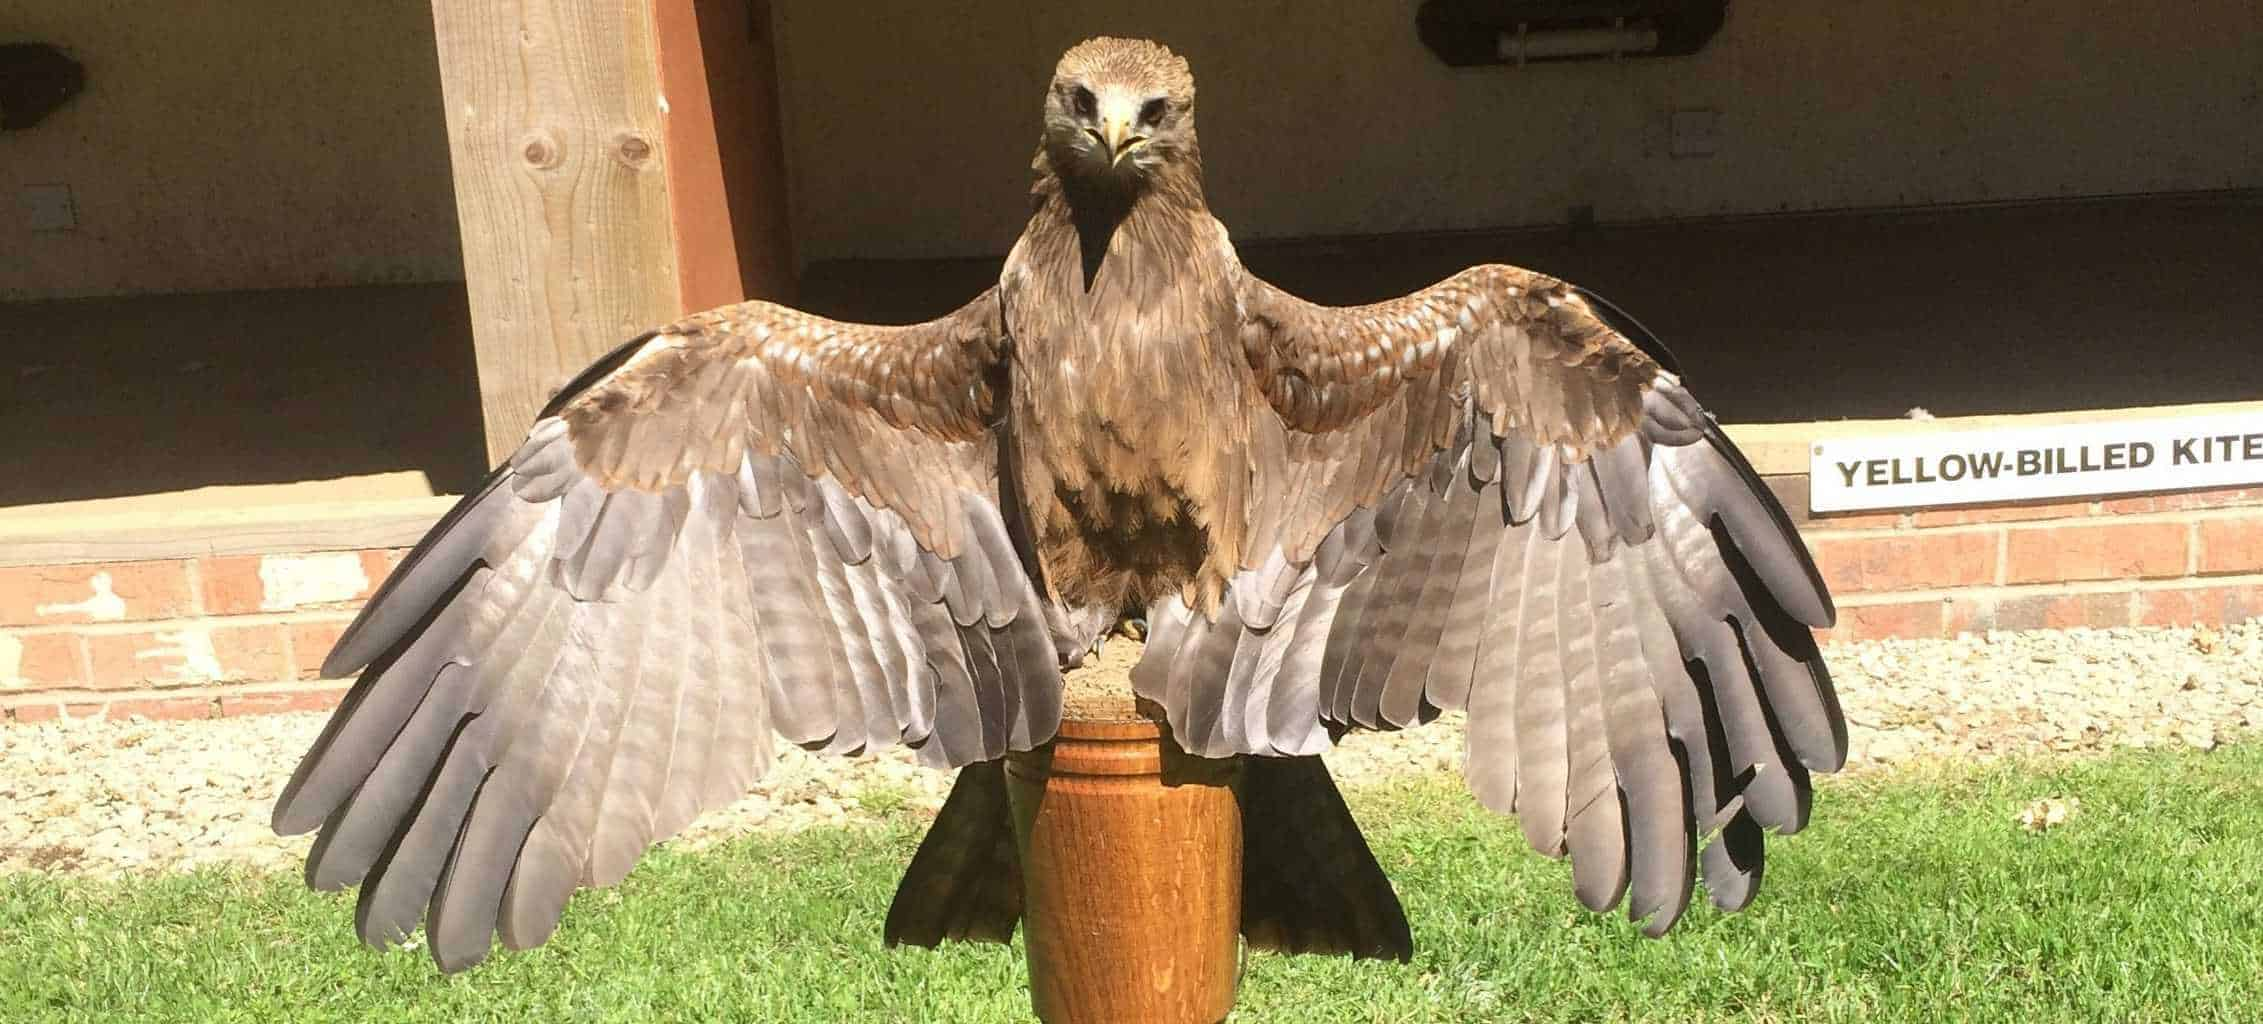 Yellow Billed Kite at National Centre for Birds of Prey